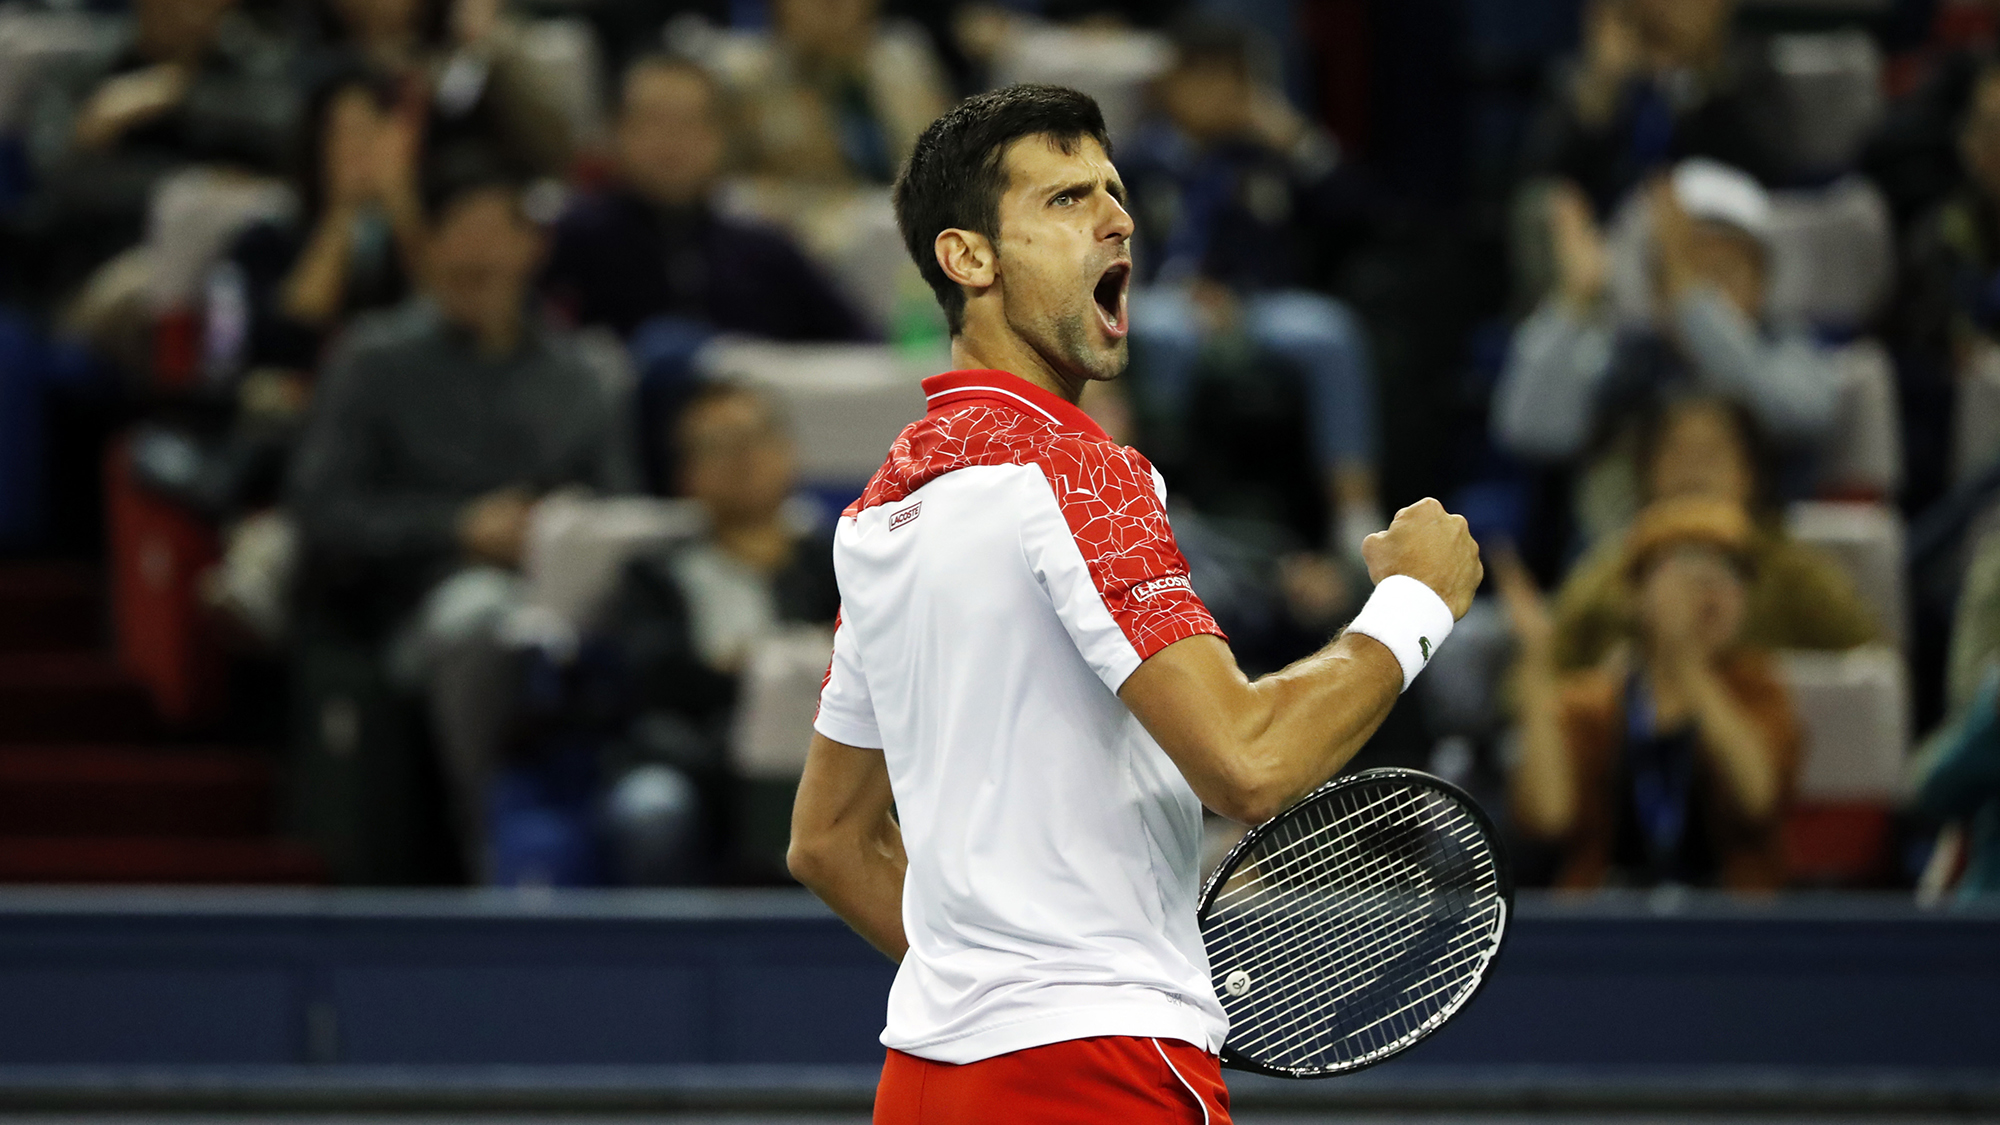 Novak Djokovic won at the 2018 tennis masters in Shanghai, China on 14 October 2018